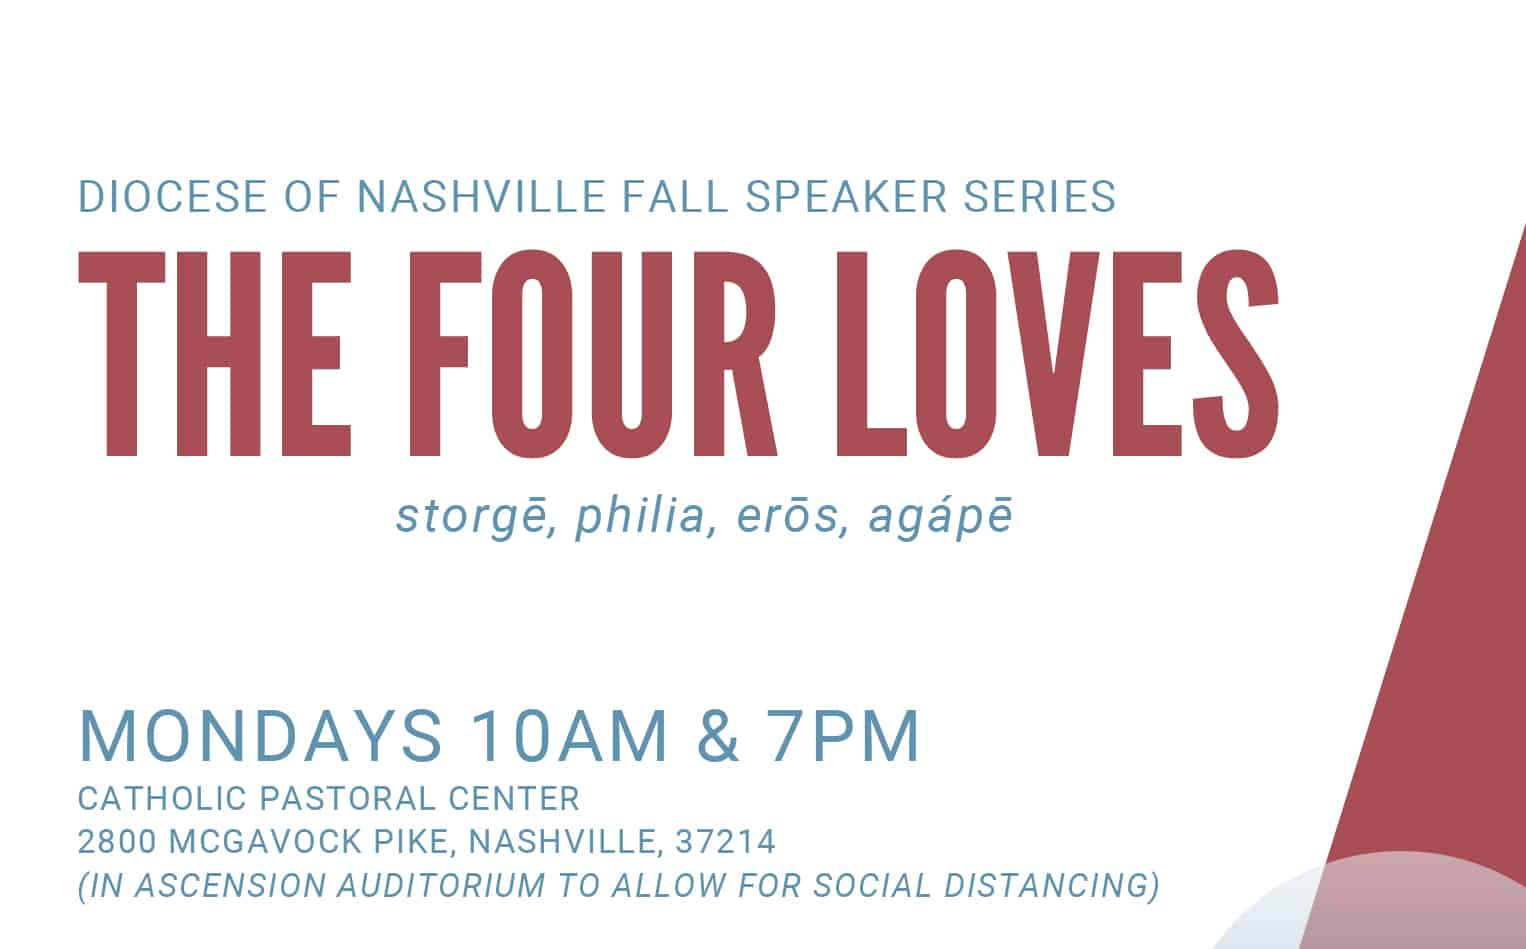 Diocese launches fall speaker series on 'The Four Loves'